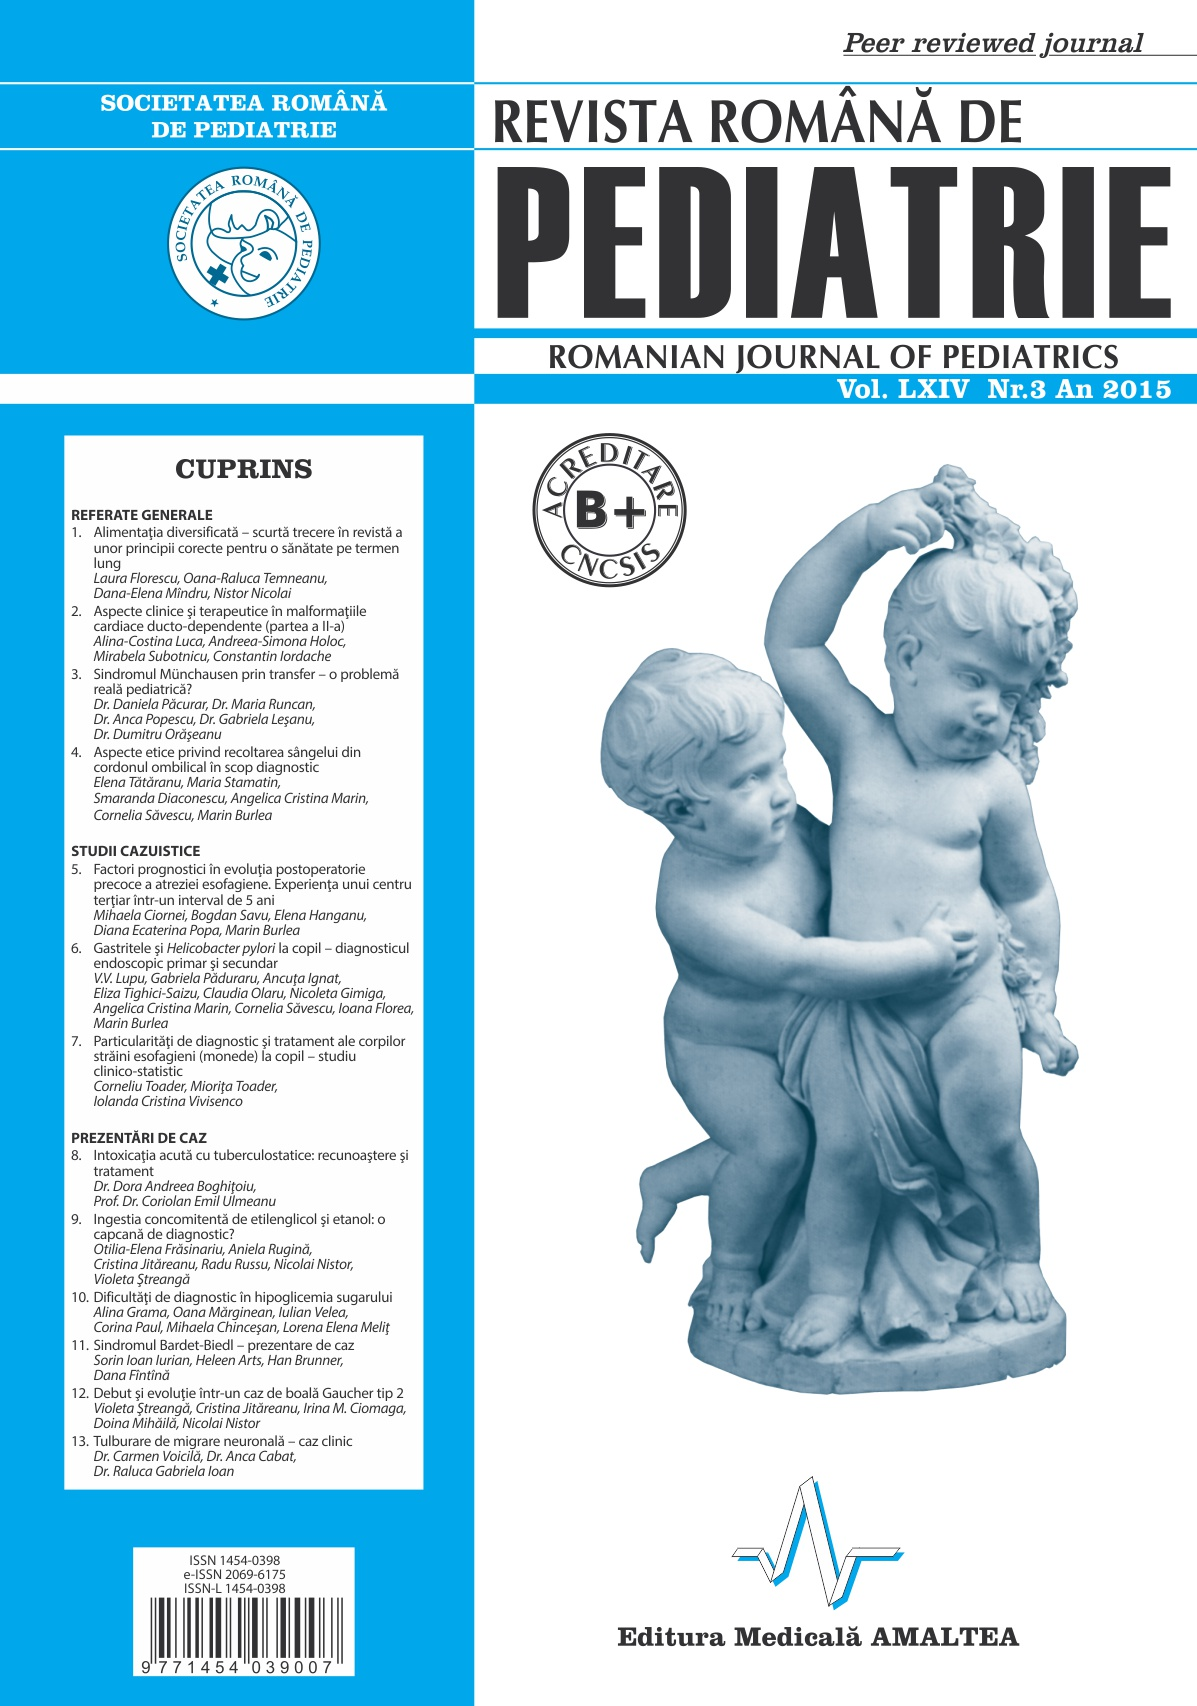 Revista Romana de PEDIATRIE | Volumul LXIV, No. 3, Year 2015